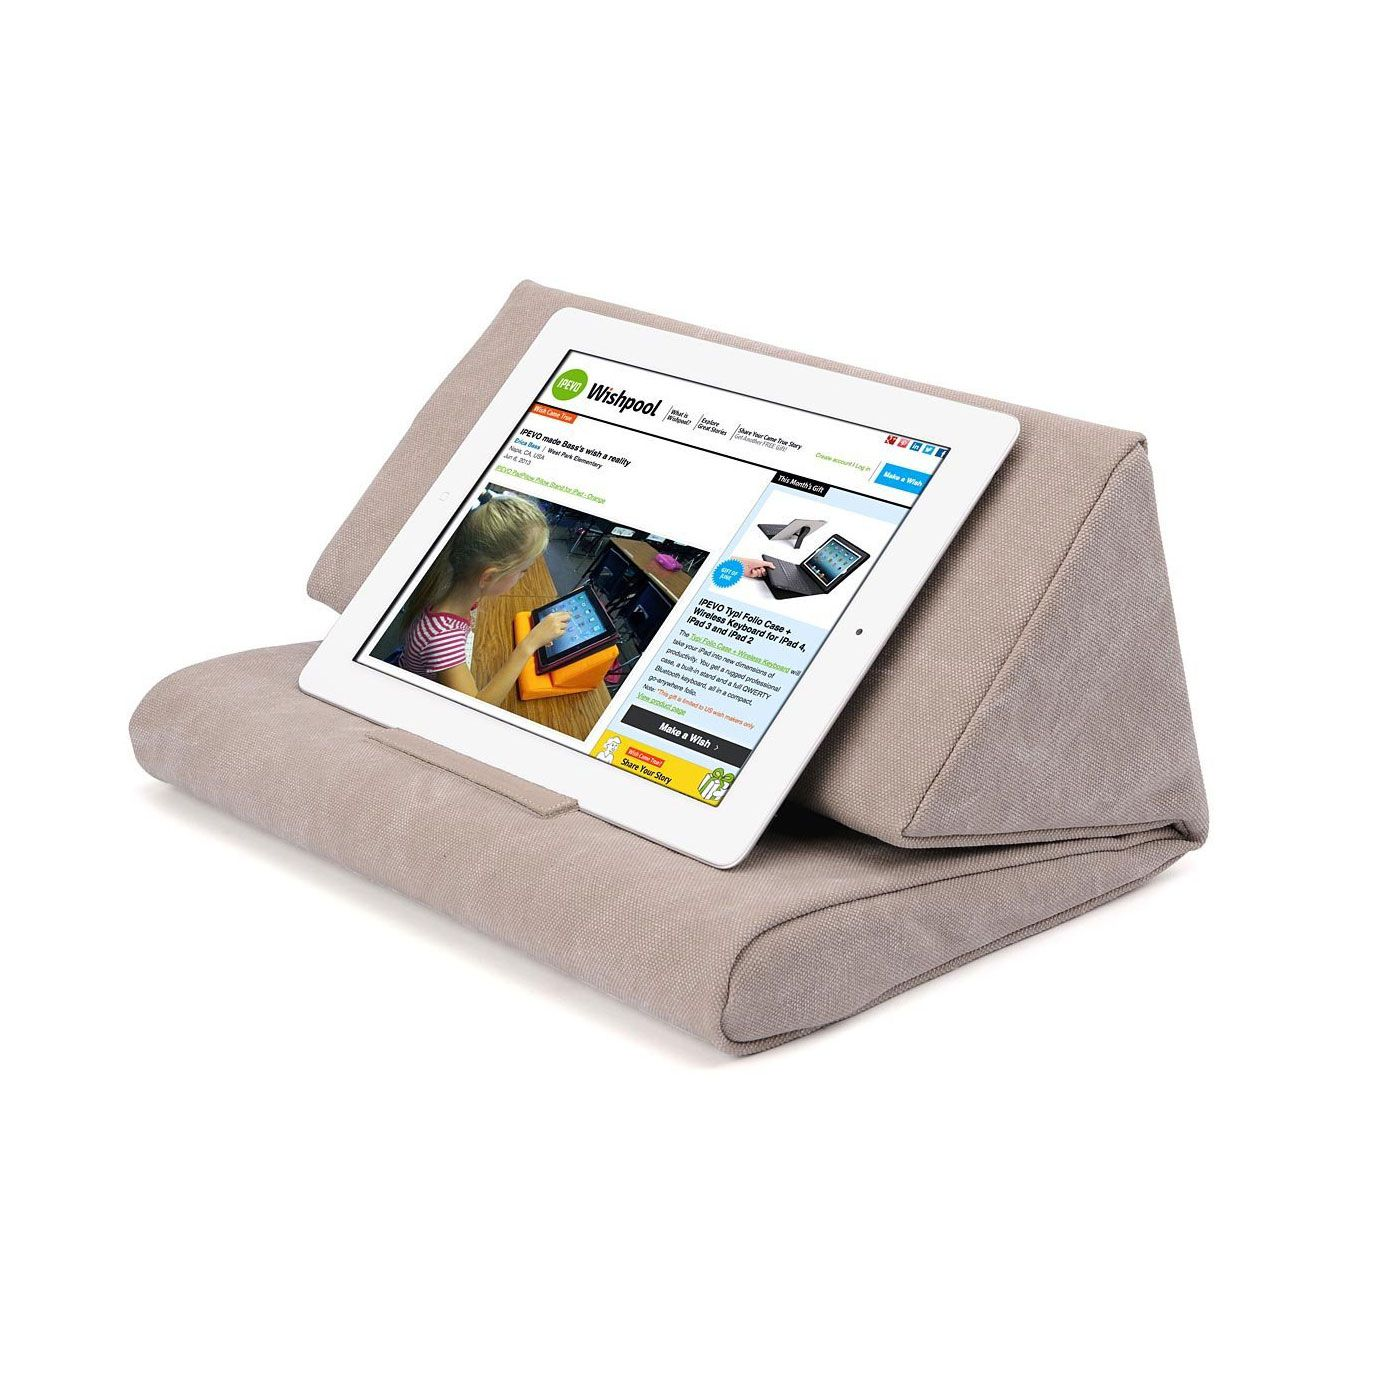 Furniture and Décor for the Modern Lifestyle Ipad stand